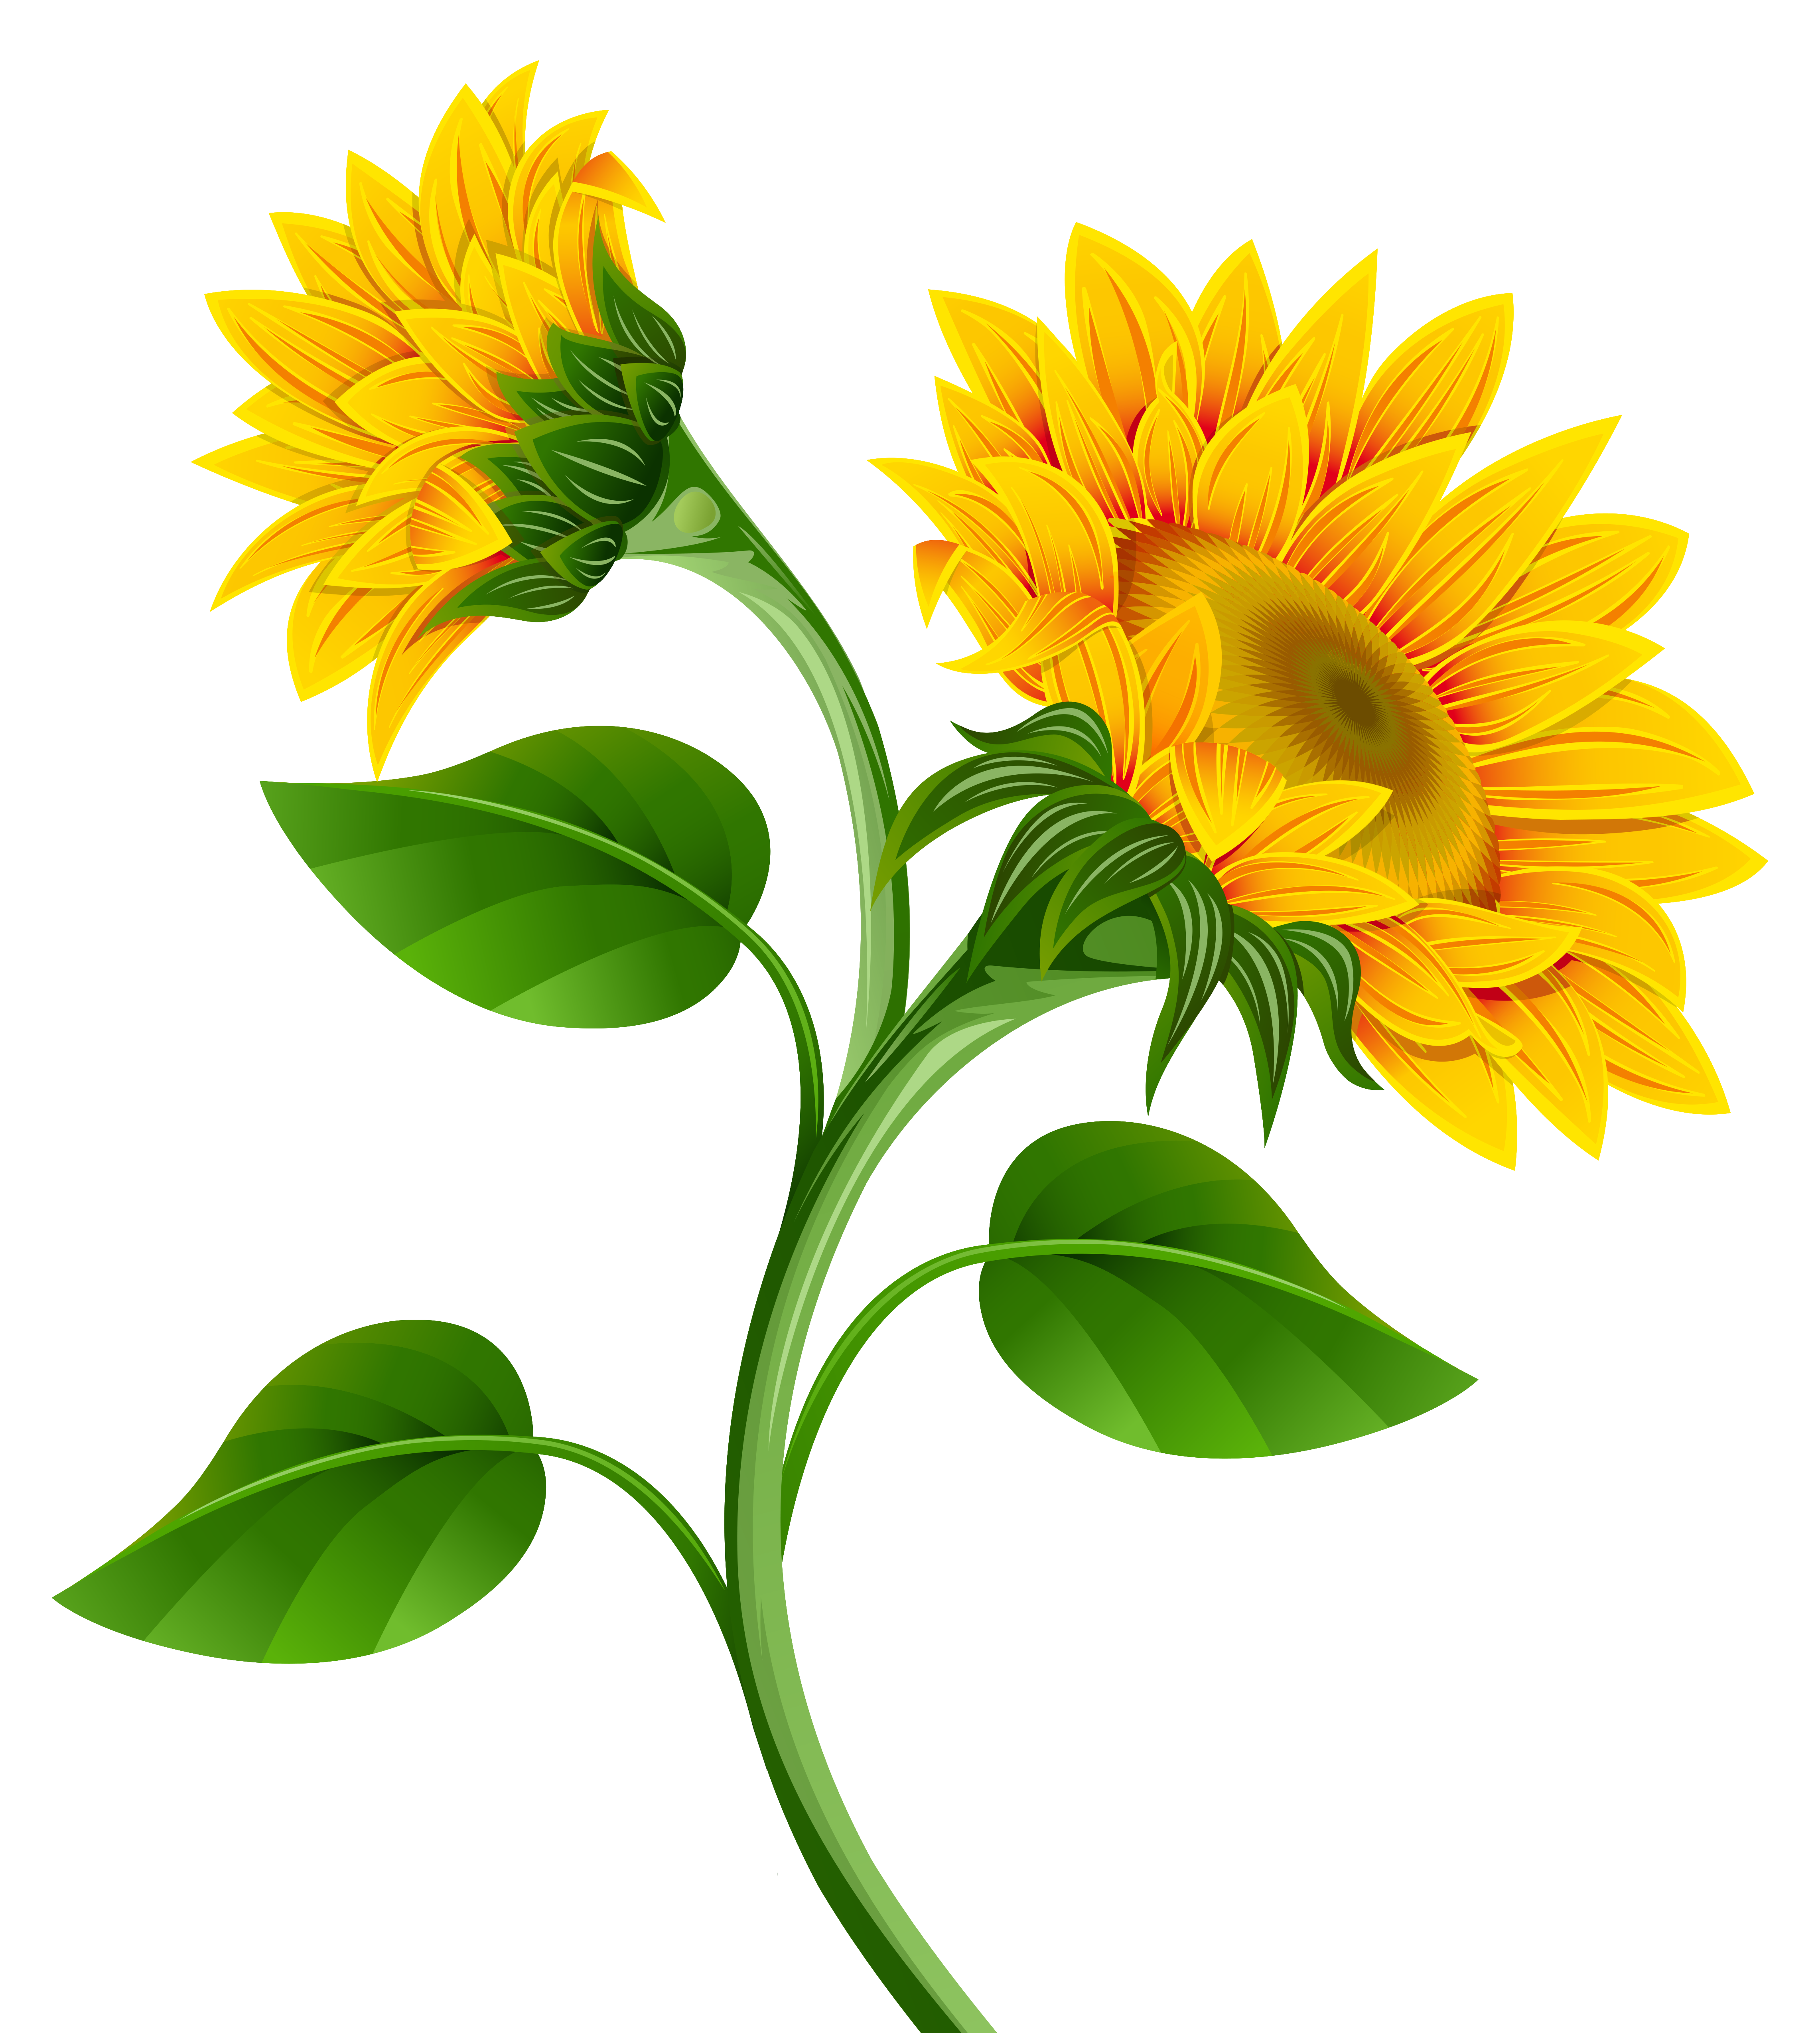 Cliparts sun flowers svg freeuse download Sunflowers PNG Clipart Image | Gallery Yopriceville - High-Quality ... svg freeuse download